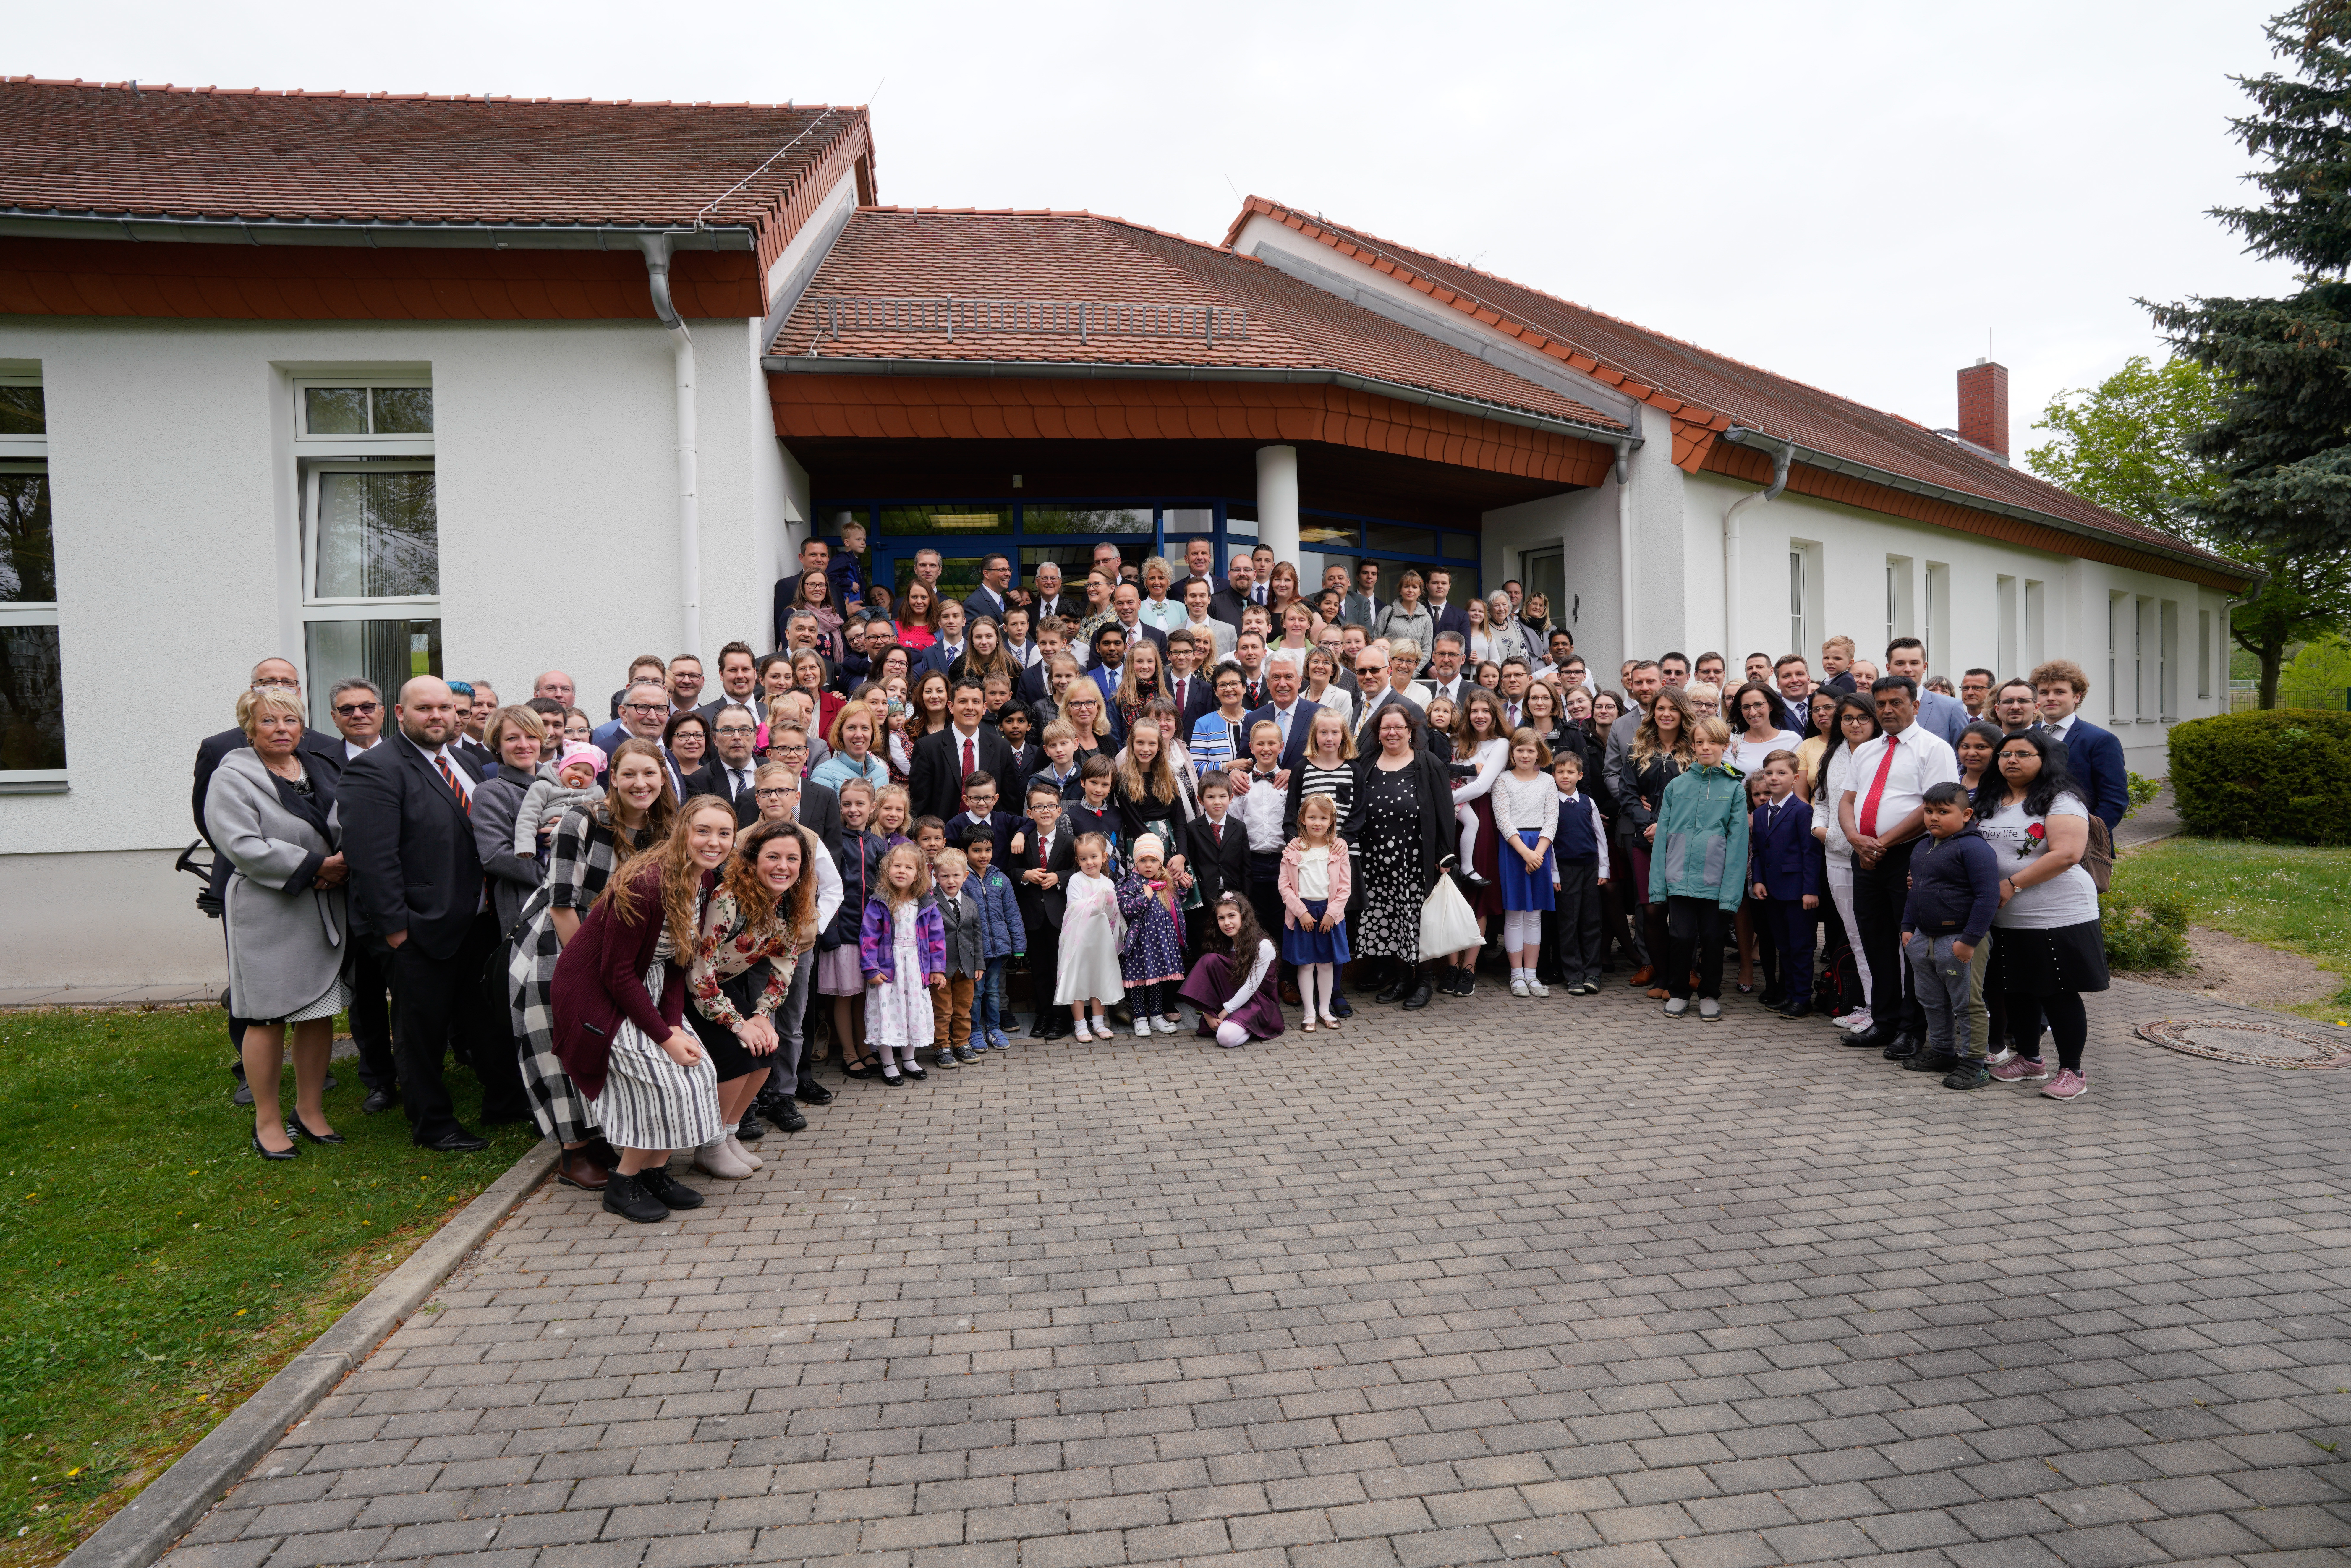 Elder Dieter F. Uchtdorf and Sister Harriet Uchtdorf, center, join members of the Görlitz Branch and visitors for a photograph after Sunday meetings in front of the meetinghouse on April 28, 2019, in Görlitz, Germany. The branch is commemorating its 120th year of existence.